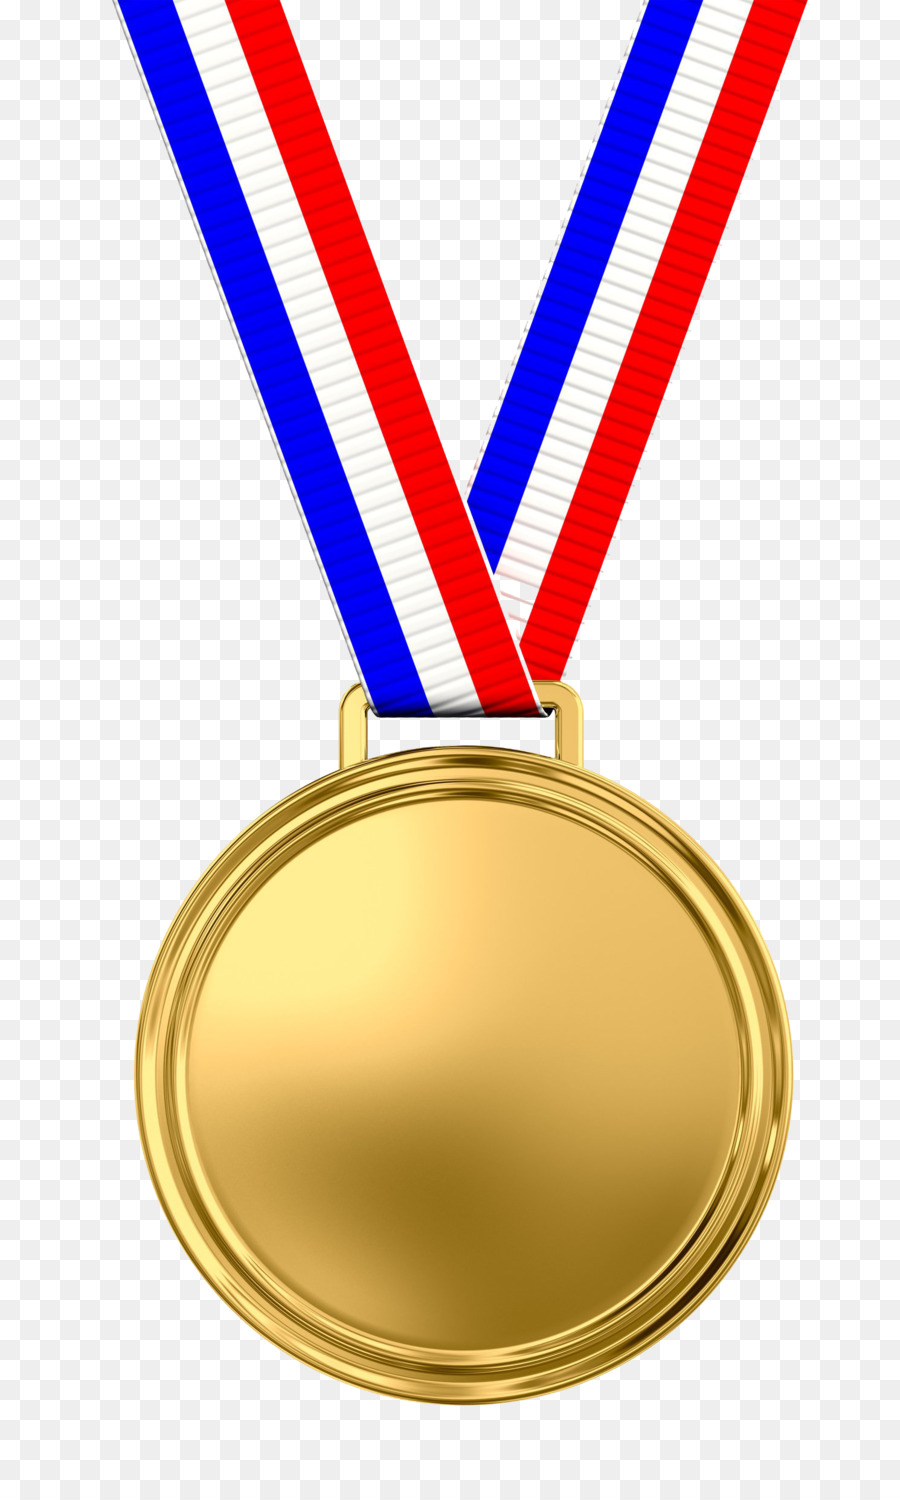 Gold olympic clip art. 4 clipart medal